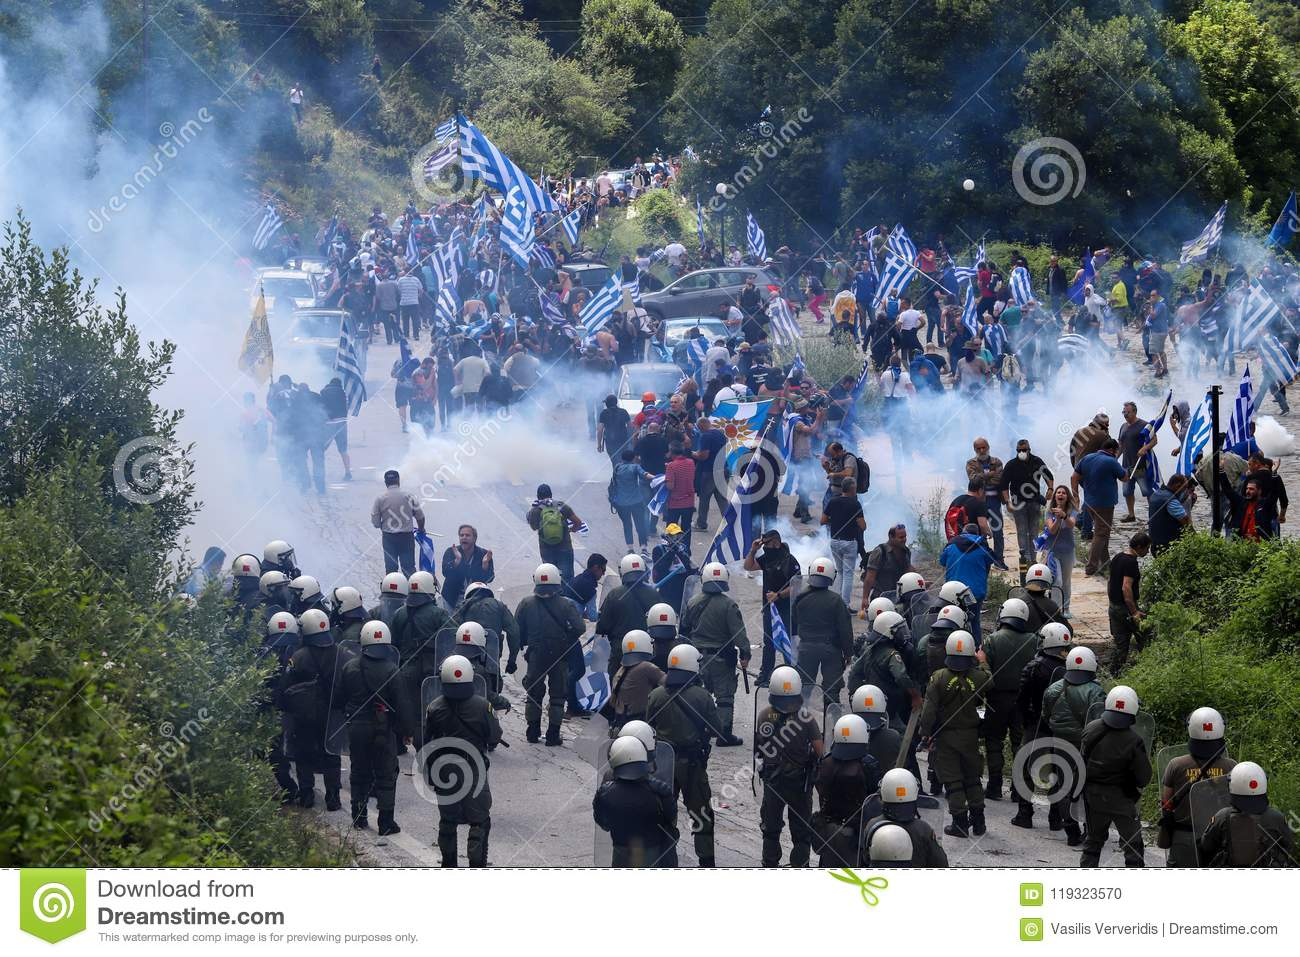 Protestors Holding Greek Flags Clash With Riot Police During